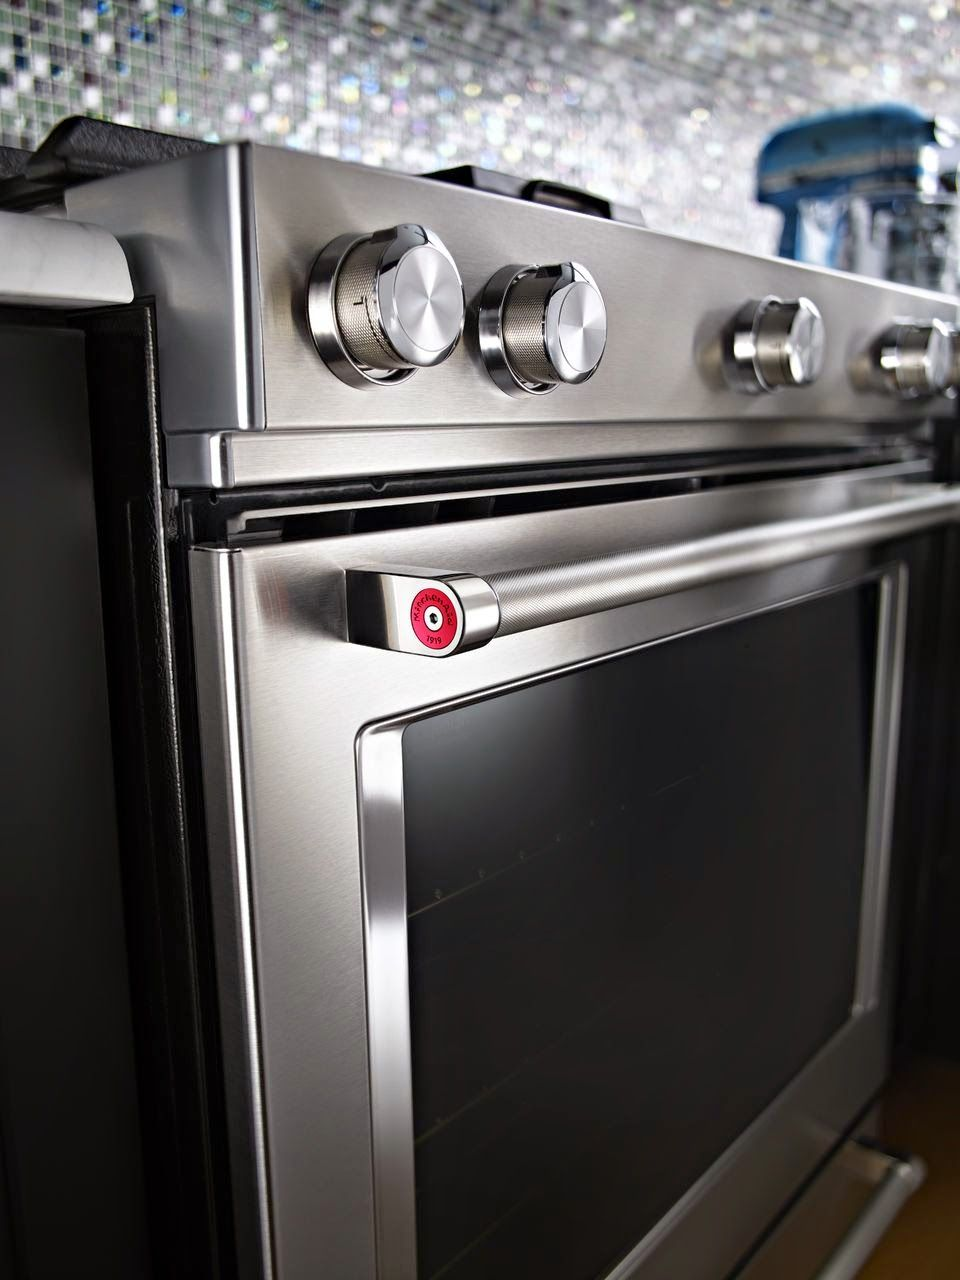 kitchen aid stove low cost modular new in 2015 kitchenaid has added the induction front control range with bake warming drawer and many more features to it s cooking line up